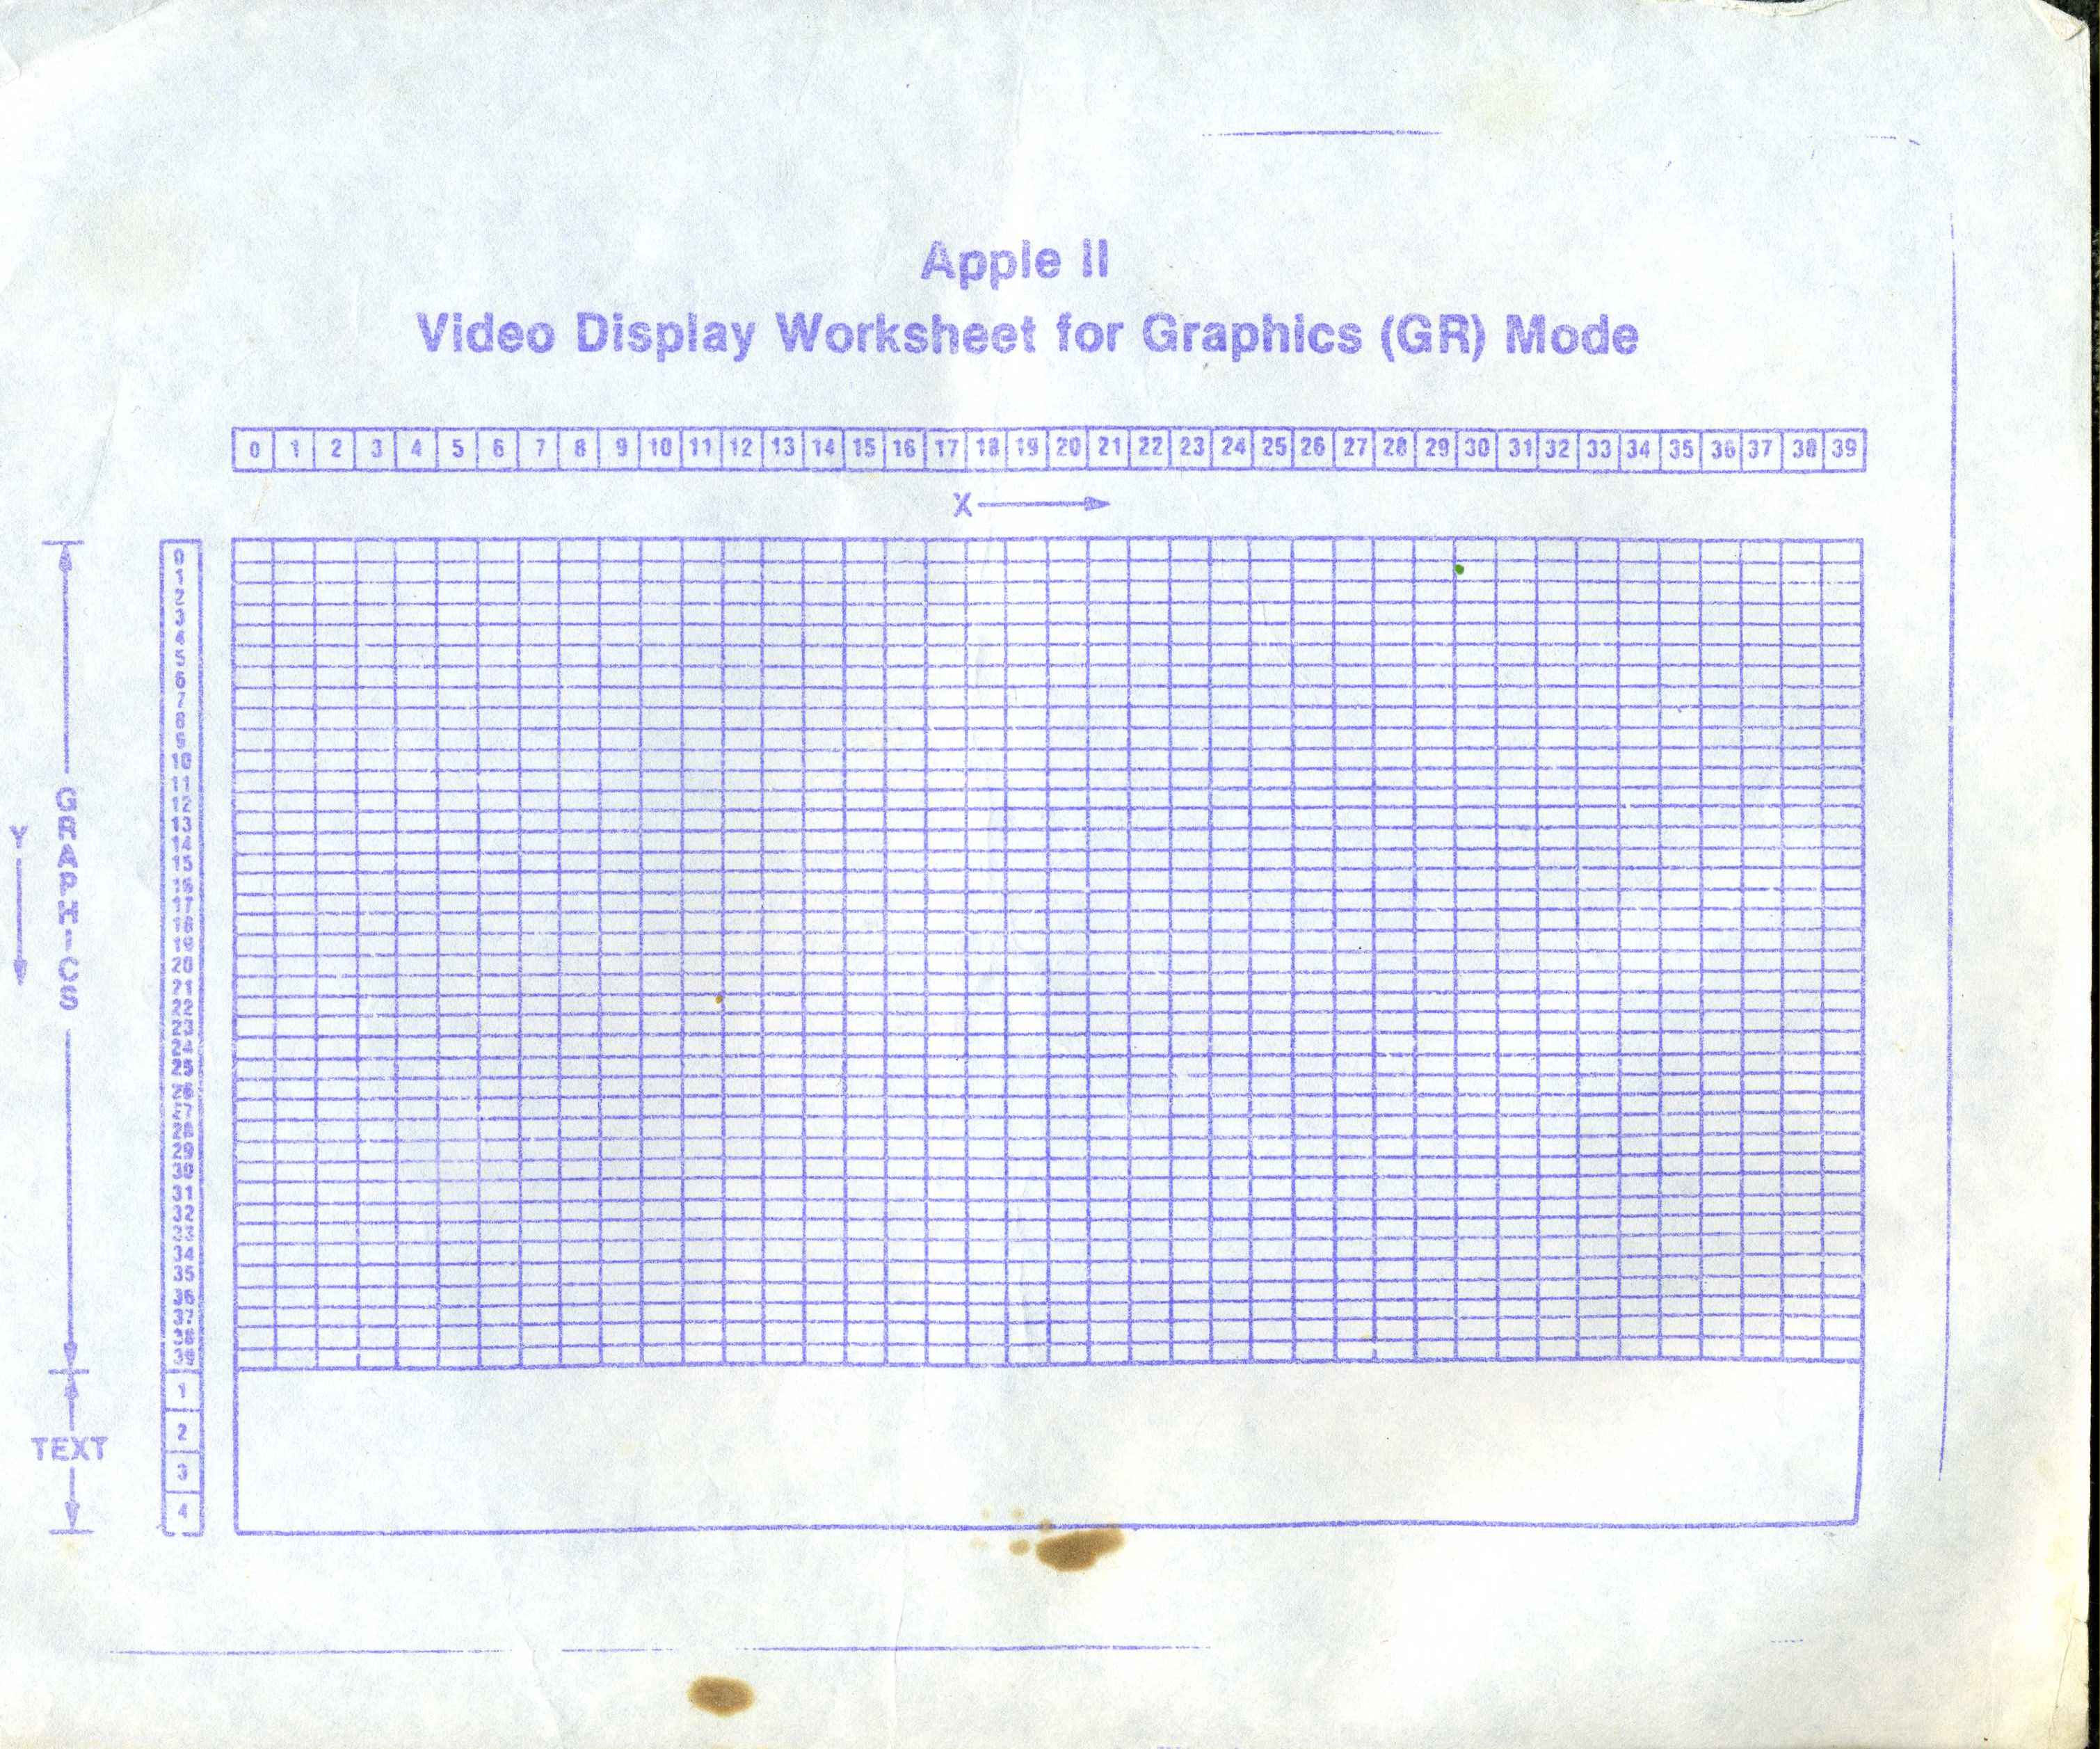 Apple II Video Display Worksheet for Graphics (GR) Mode